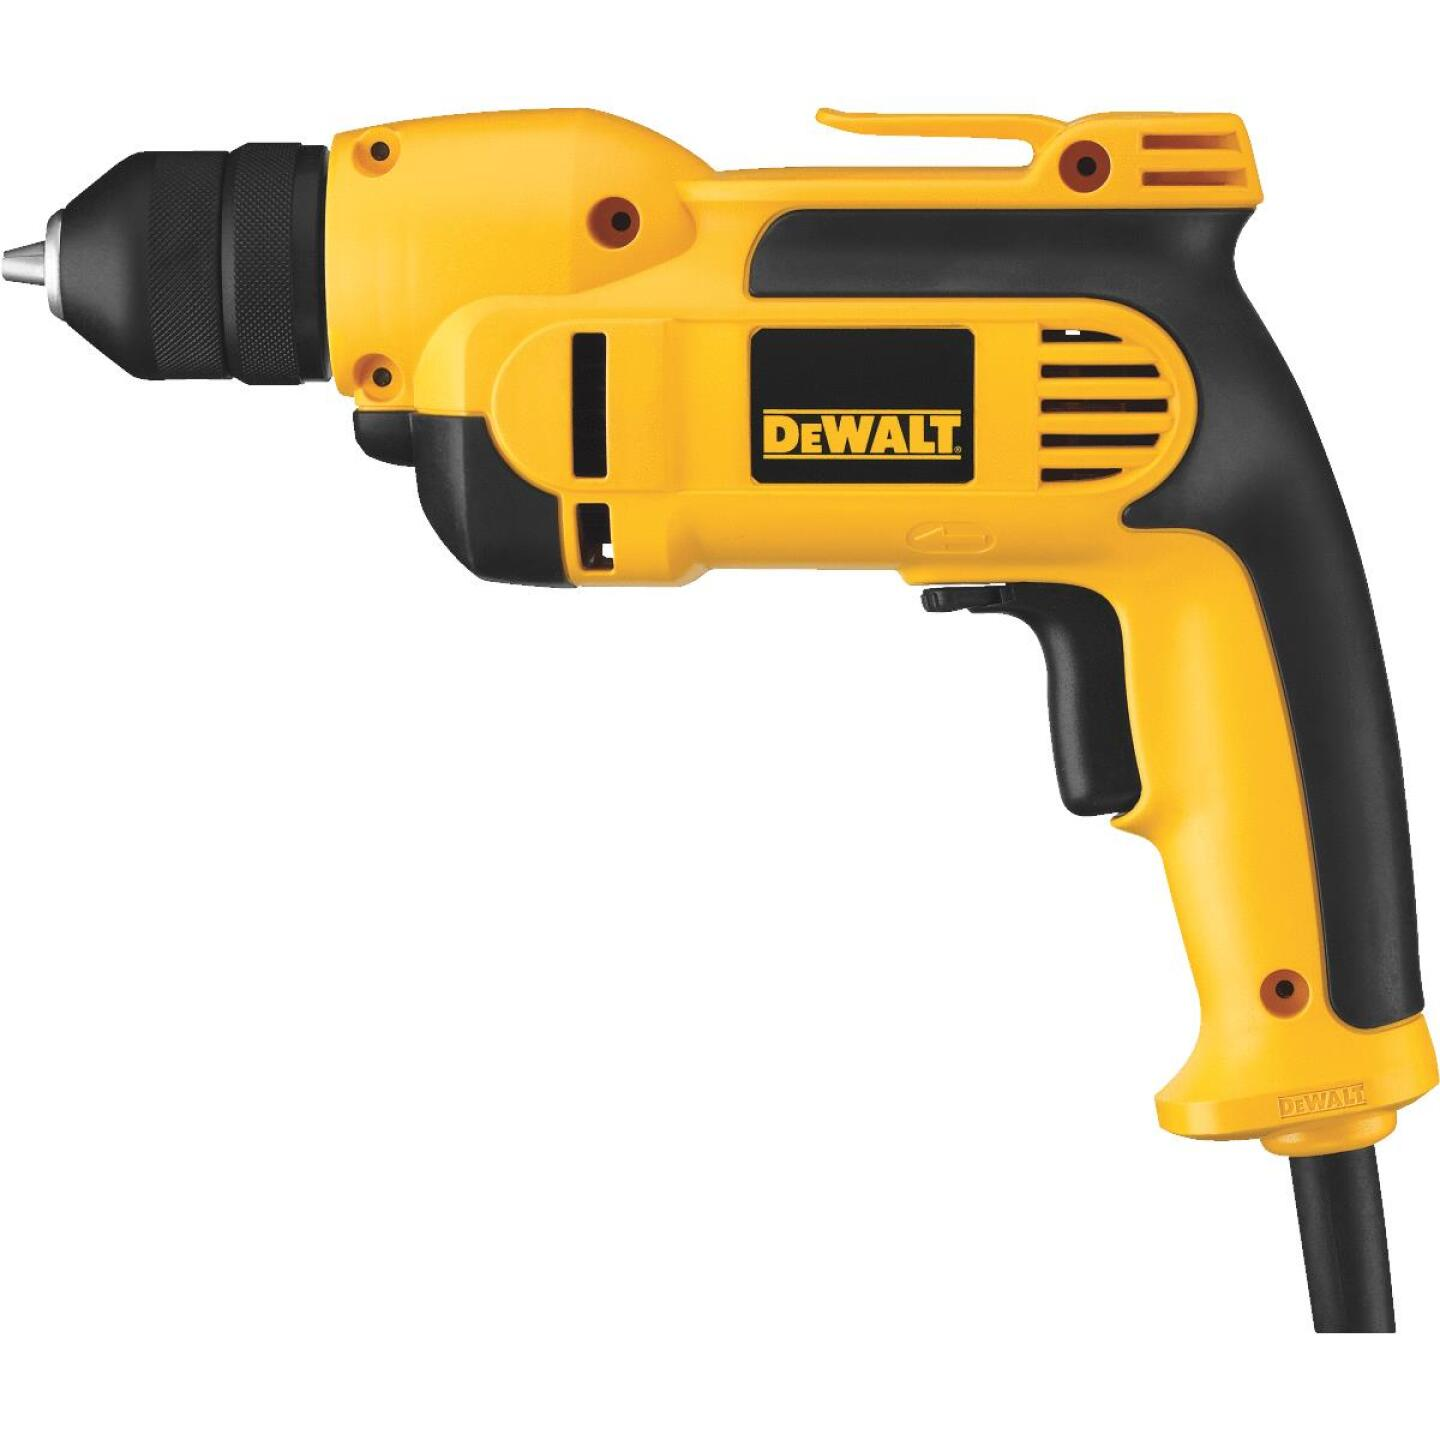 DeWalt 3/8 In. 8-Amp Keyless Electric Drill Image 1